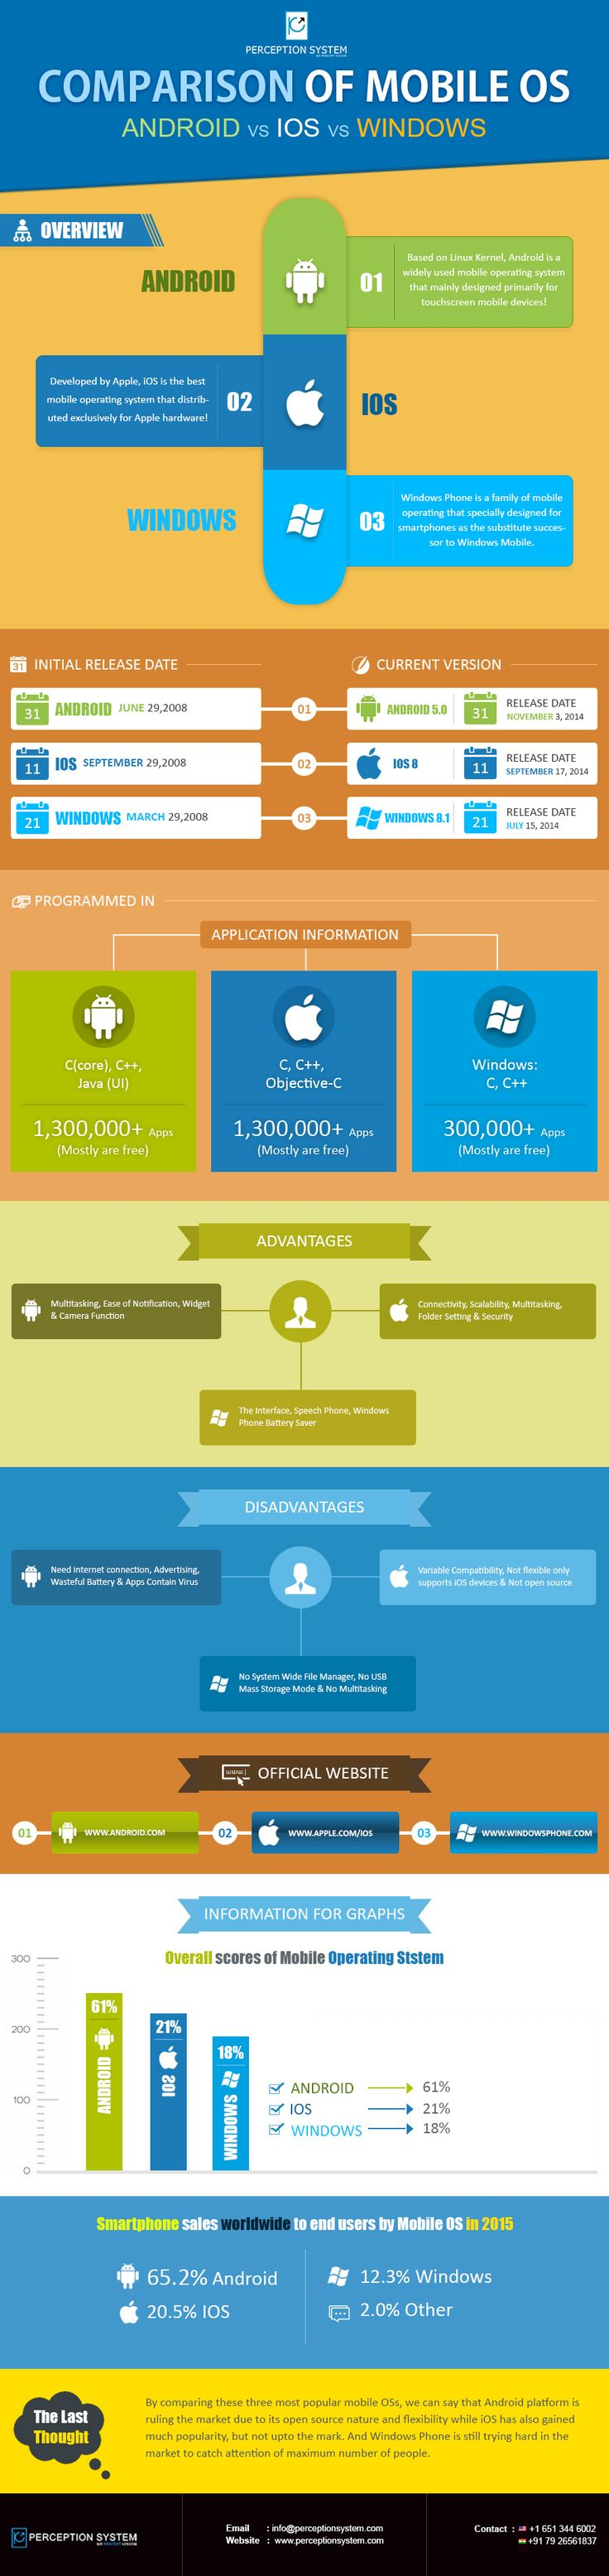 http://blogs.perceptionsystem.com/infographic/android-ios-windows-phone-os-comparison